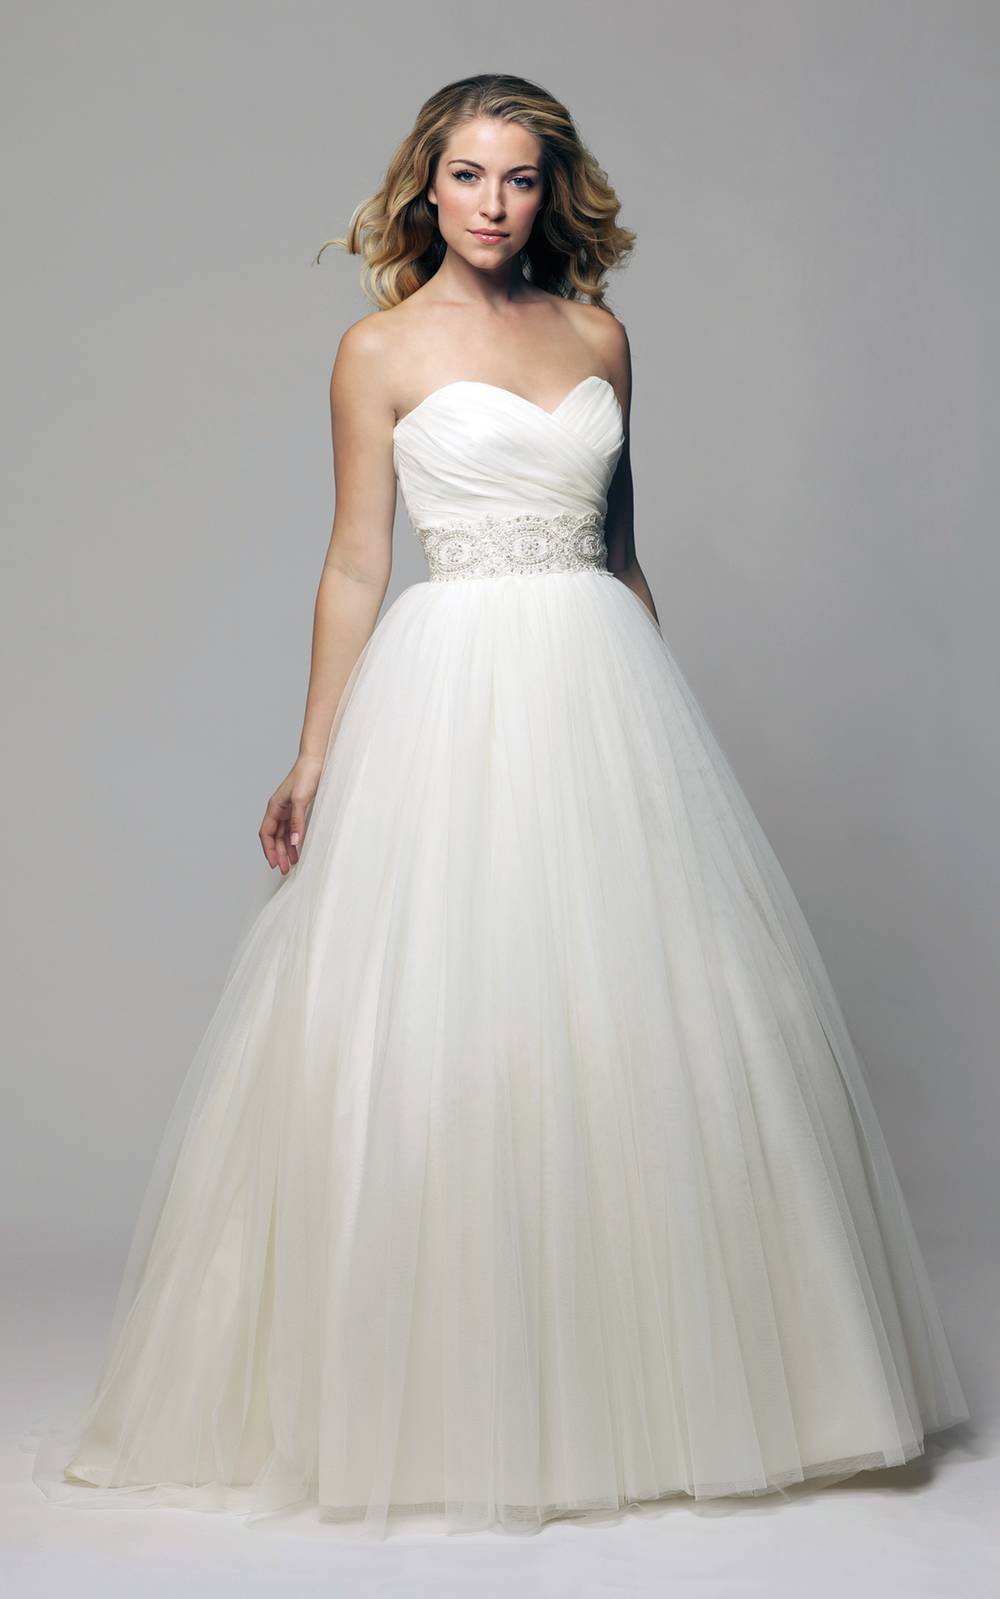 Leanne Marshall Bridal gowns, a&bé bridal shop denver, co